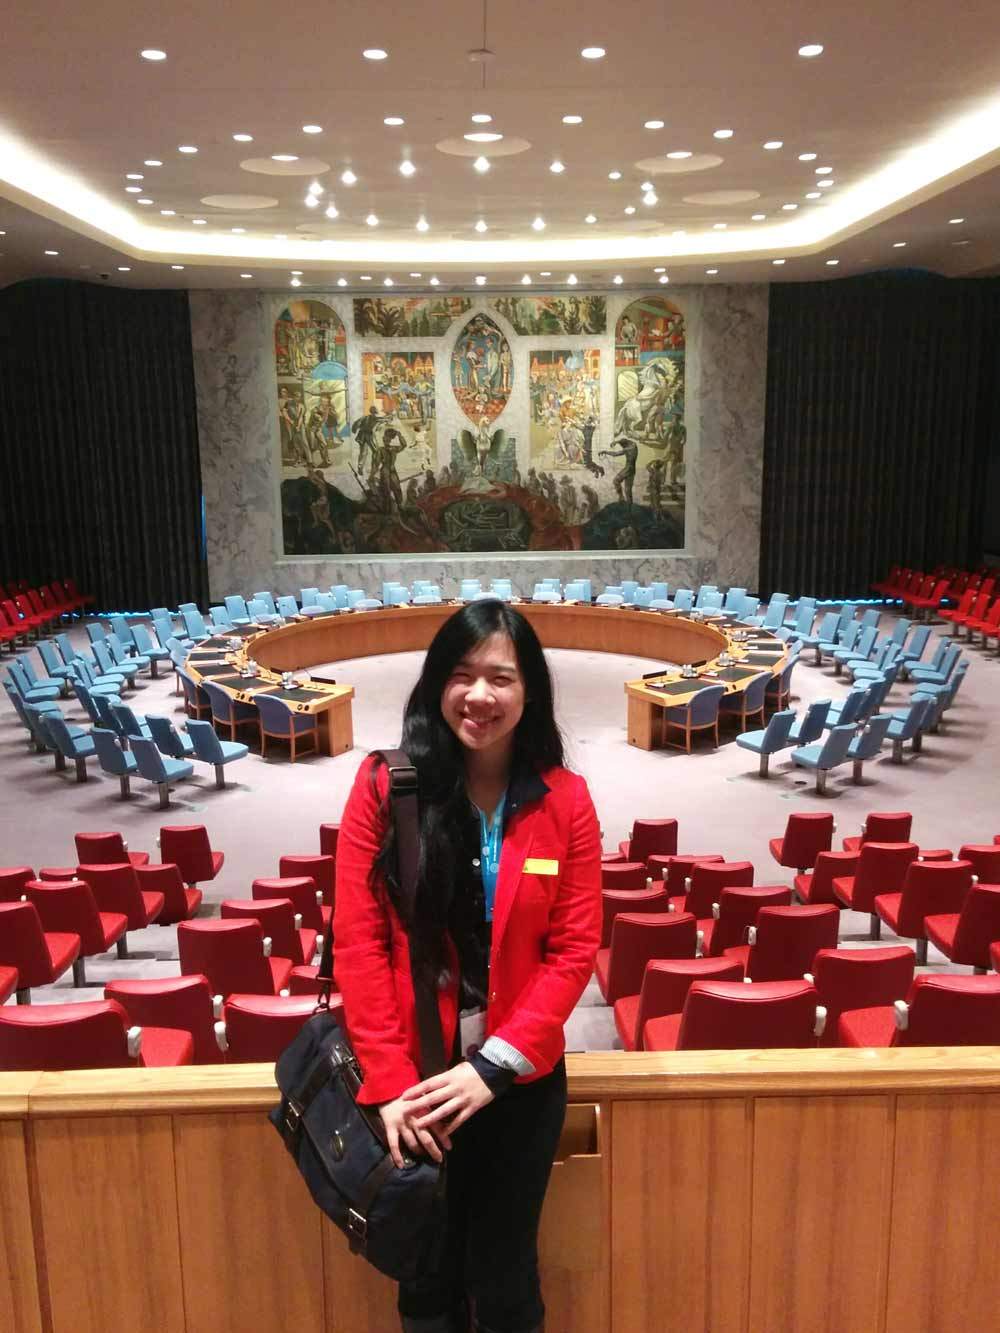 Behind the Scenes at the Winter 2015 UN Youth Assembly